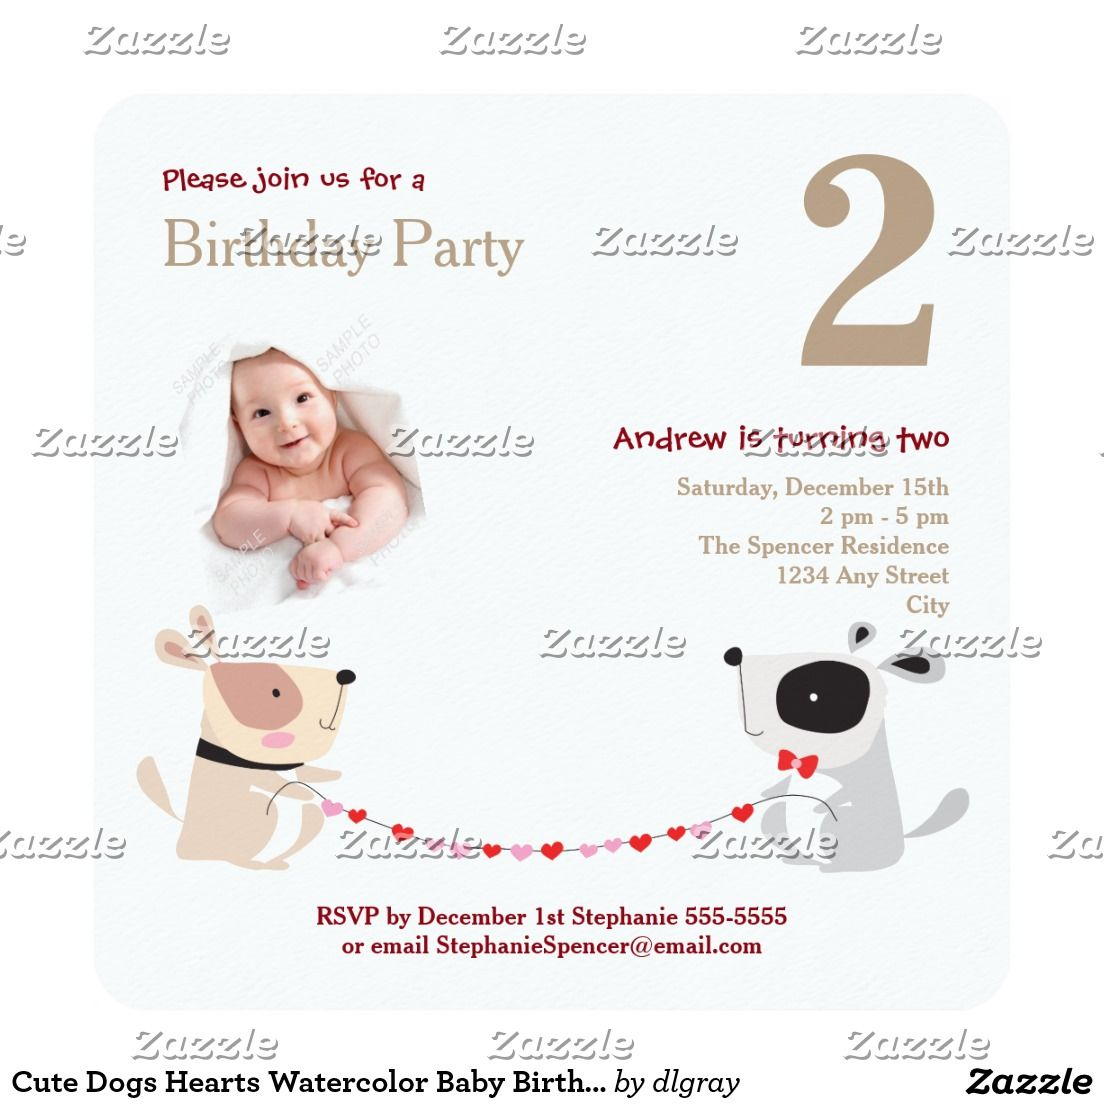 Cute Dogs Hearts Watercolor Baby Birthday Party Card | Birthday ...